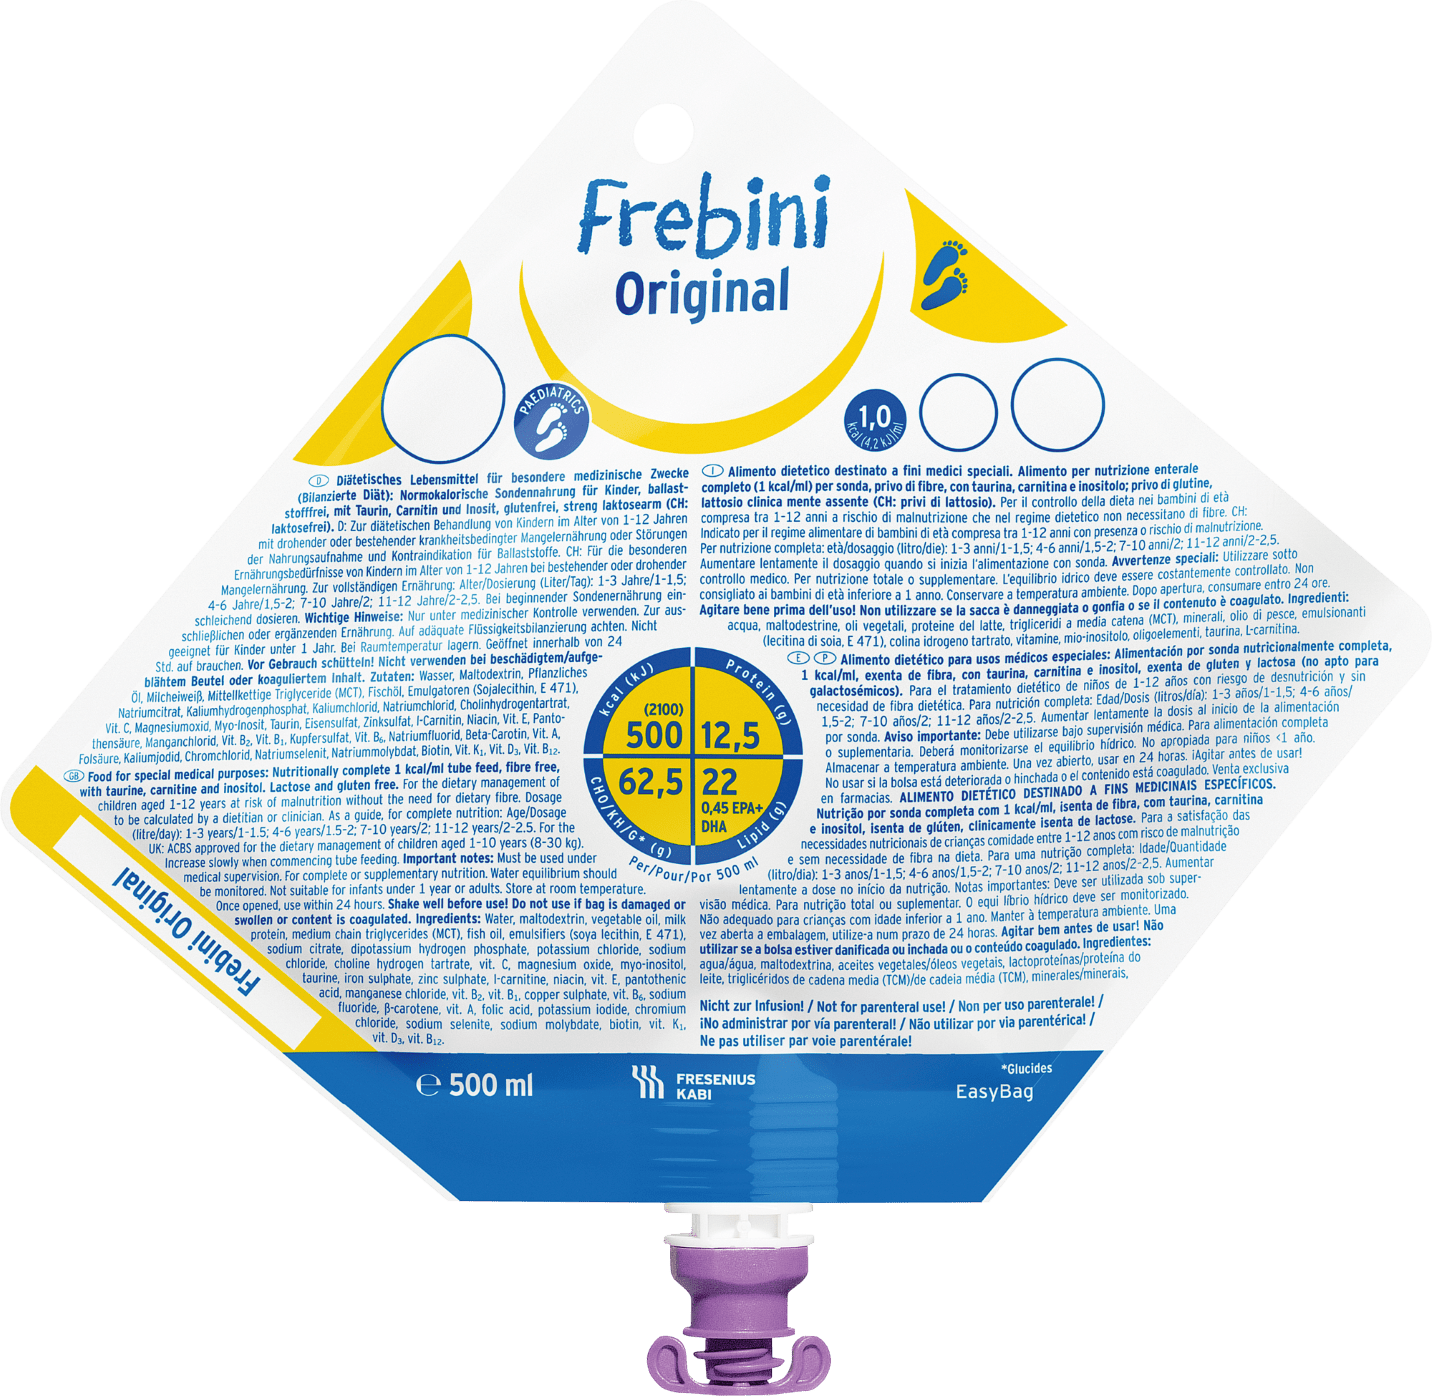 Frebini_Original_Int_500ml-2